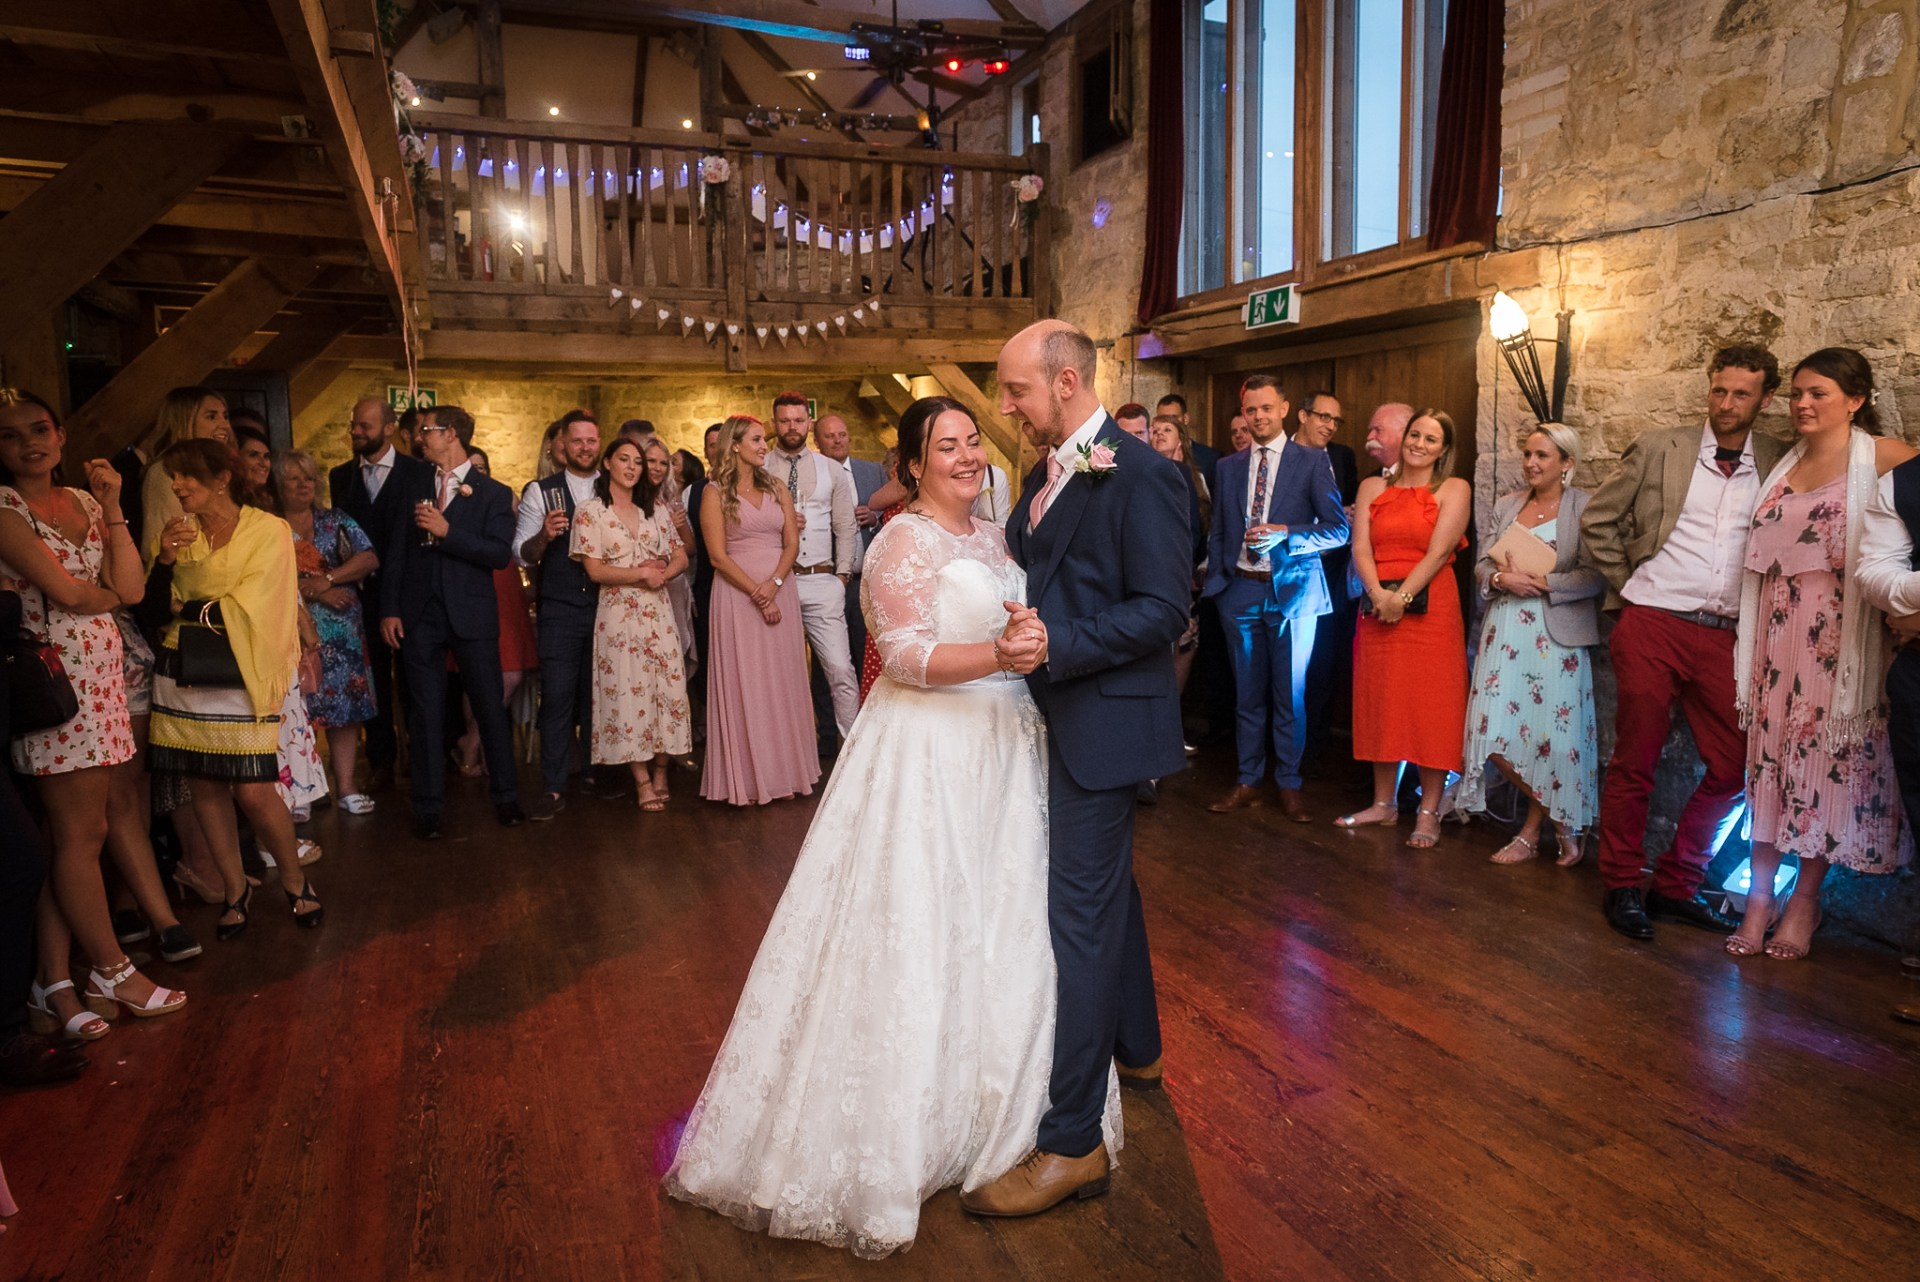 Bride and groom's first dance at Swallows Oast wedding venue, Ticehurst, East Sussex | Oakhouse Photography